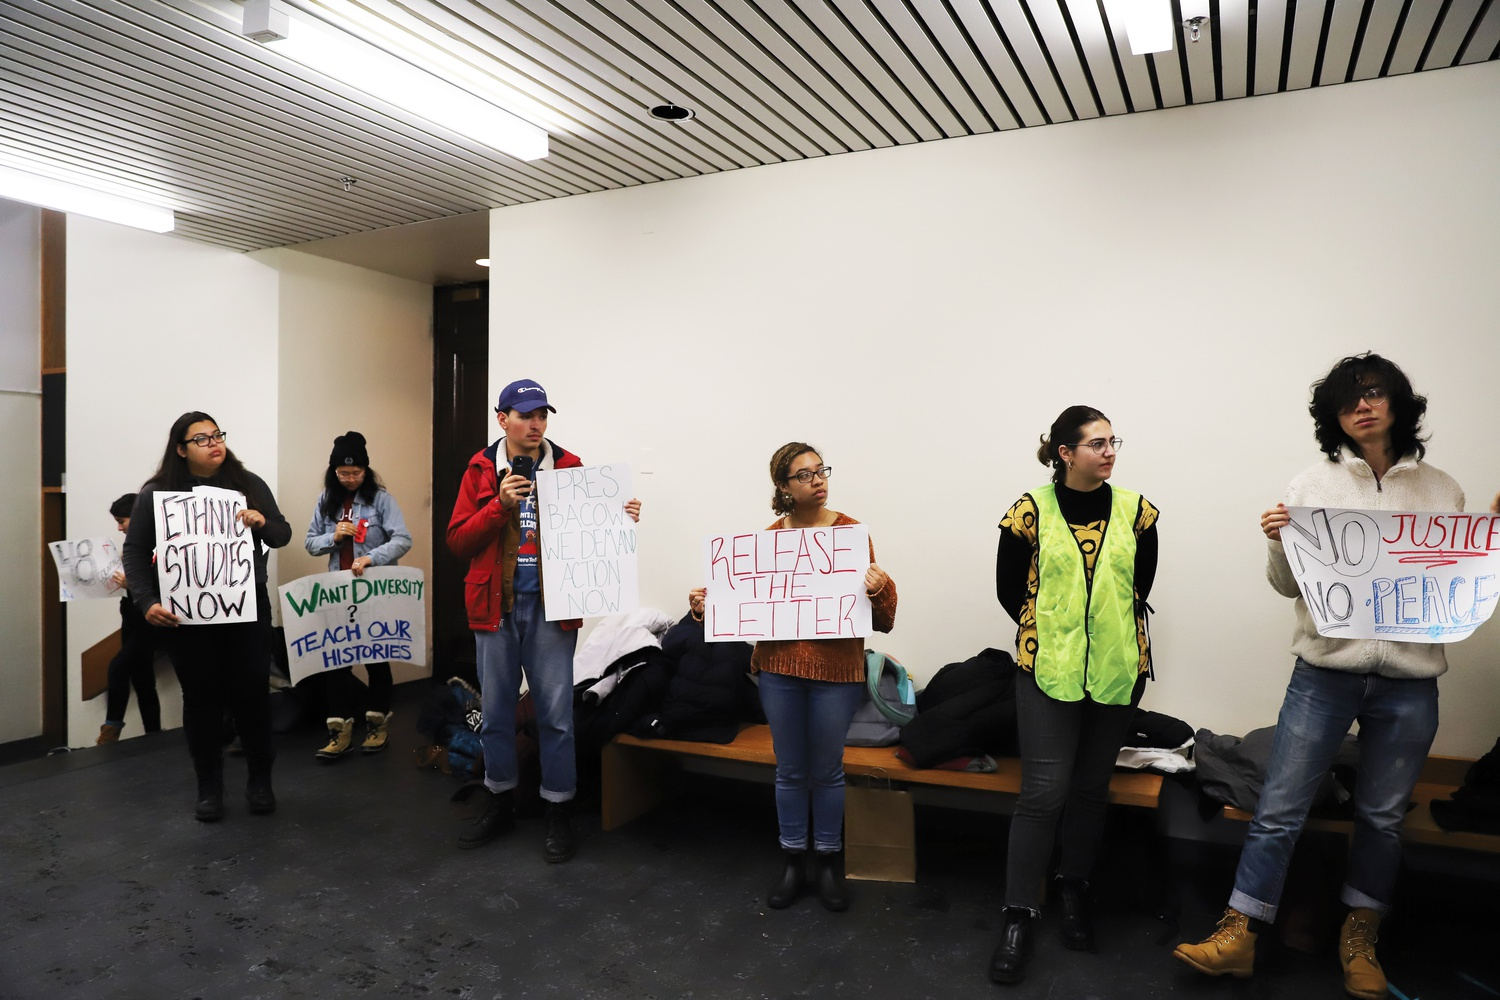 Protestors lined the walls of Emerson Hall outside of a faculty meeting on Tuesday after professor Lorgia García Peña was denied tenure.